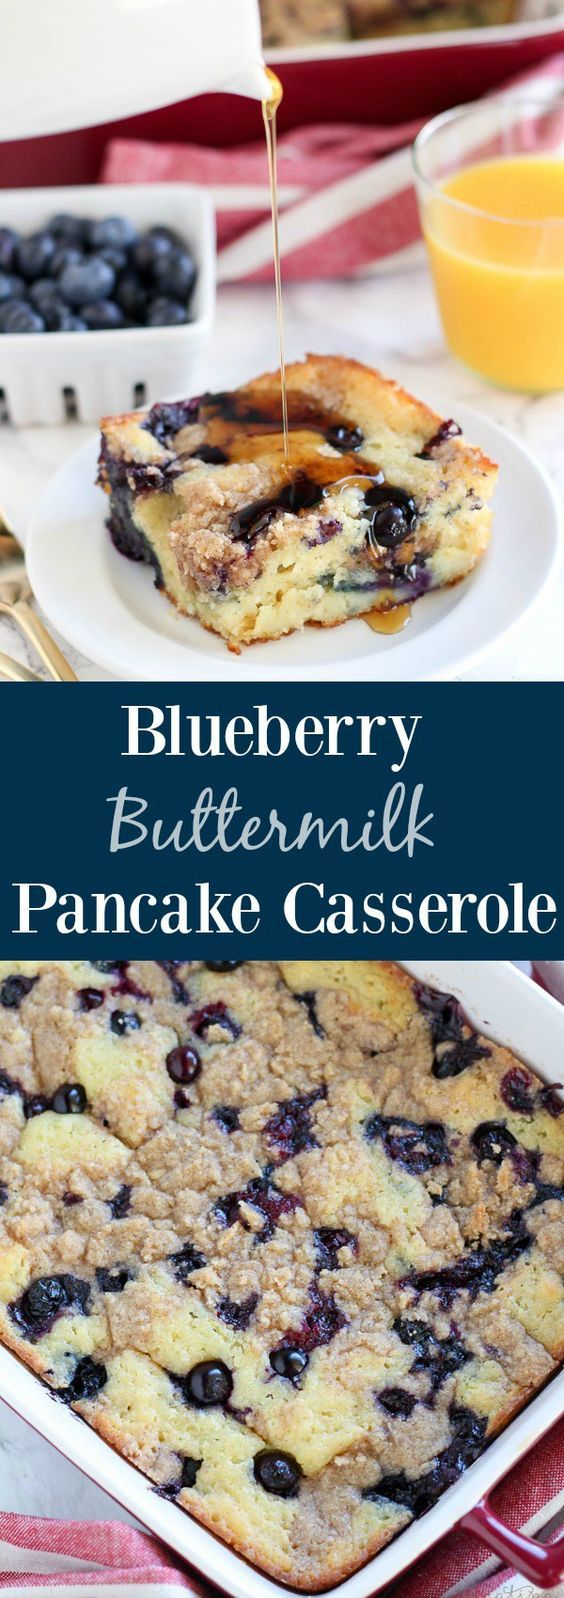 Blueberry Buttermilk Pancake Casserole Recipe | Celebrating Sweets